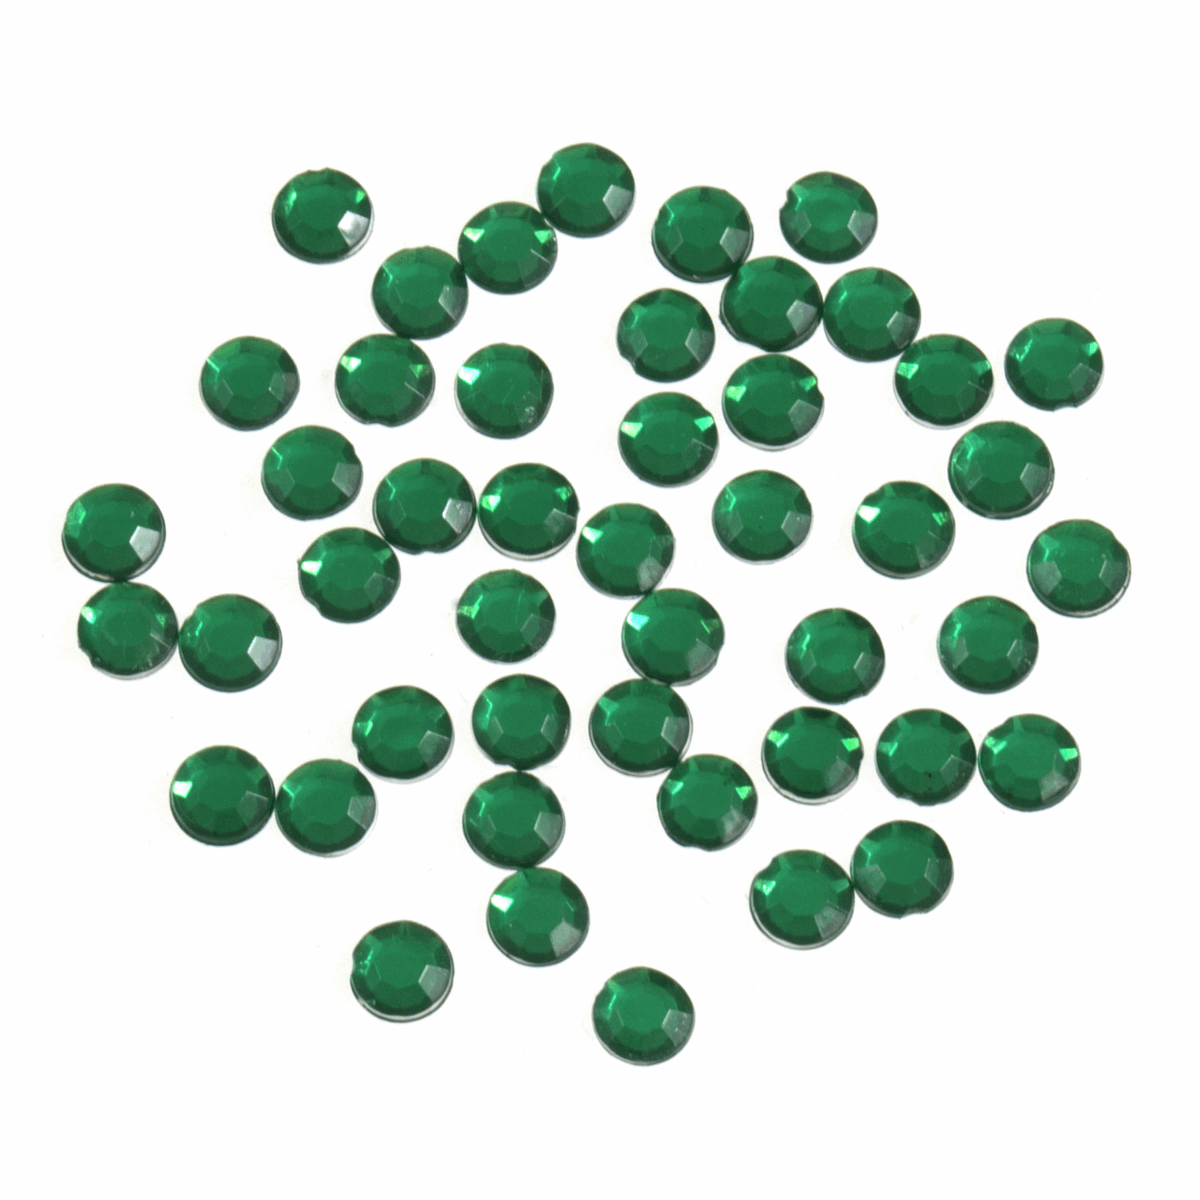 Picture of Acrylic Stones: Glue-On: Round: Medium-5mm: Green